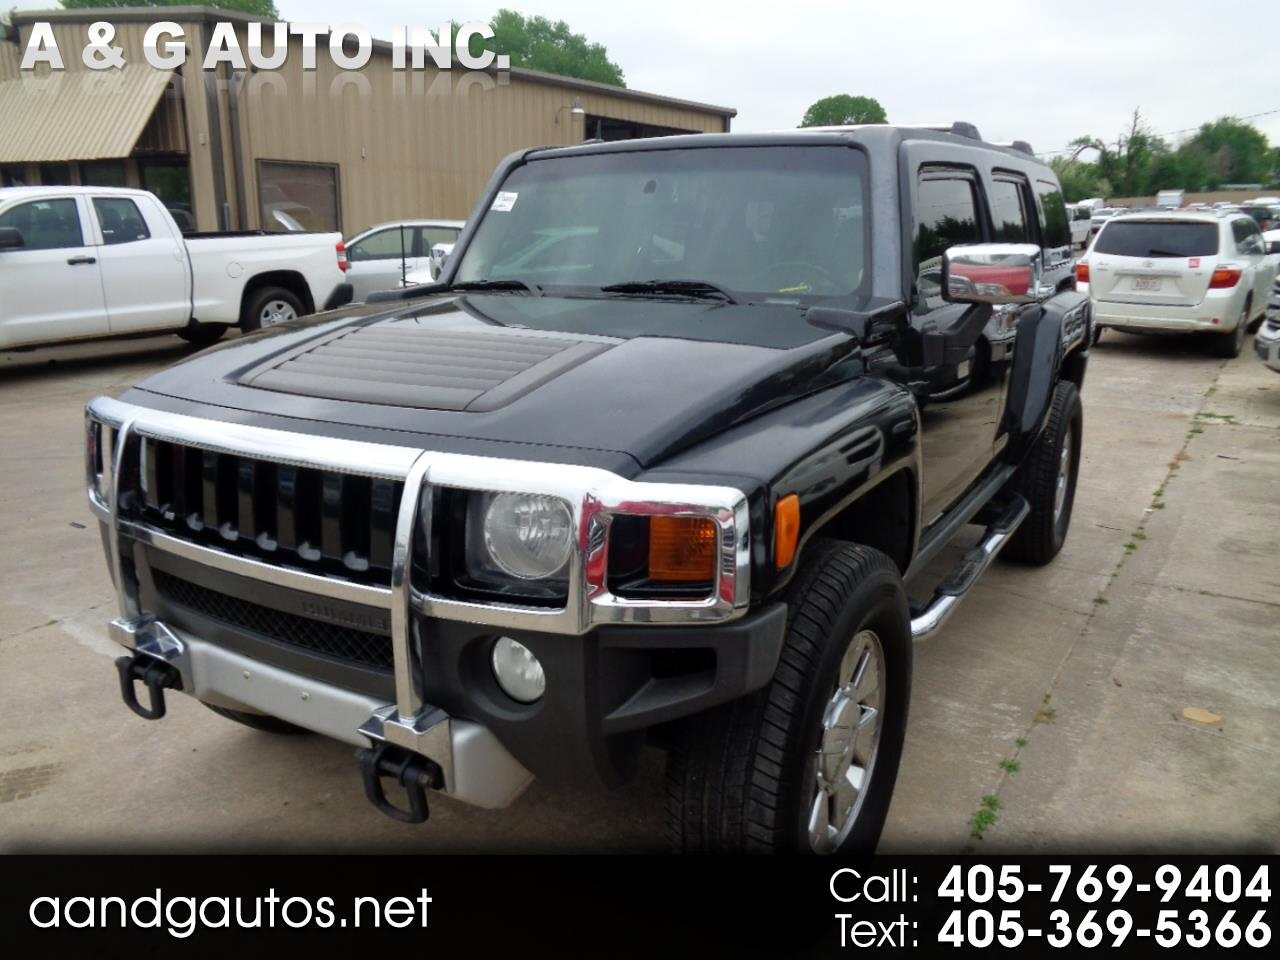 2008 HUMMER H3 4WD 4dr H3T Alpha Leather